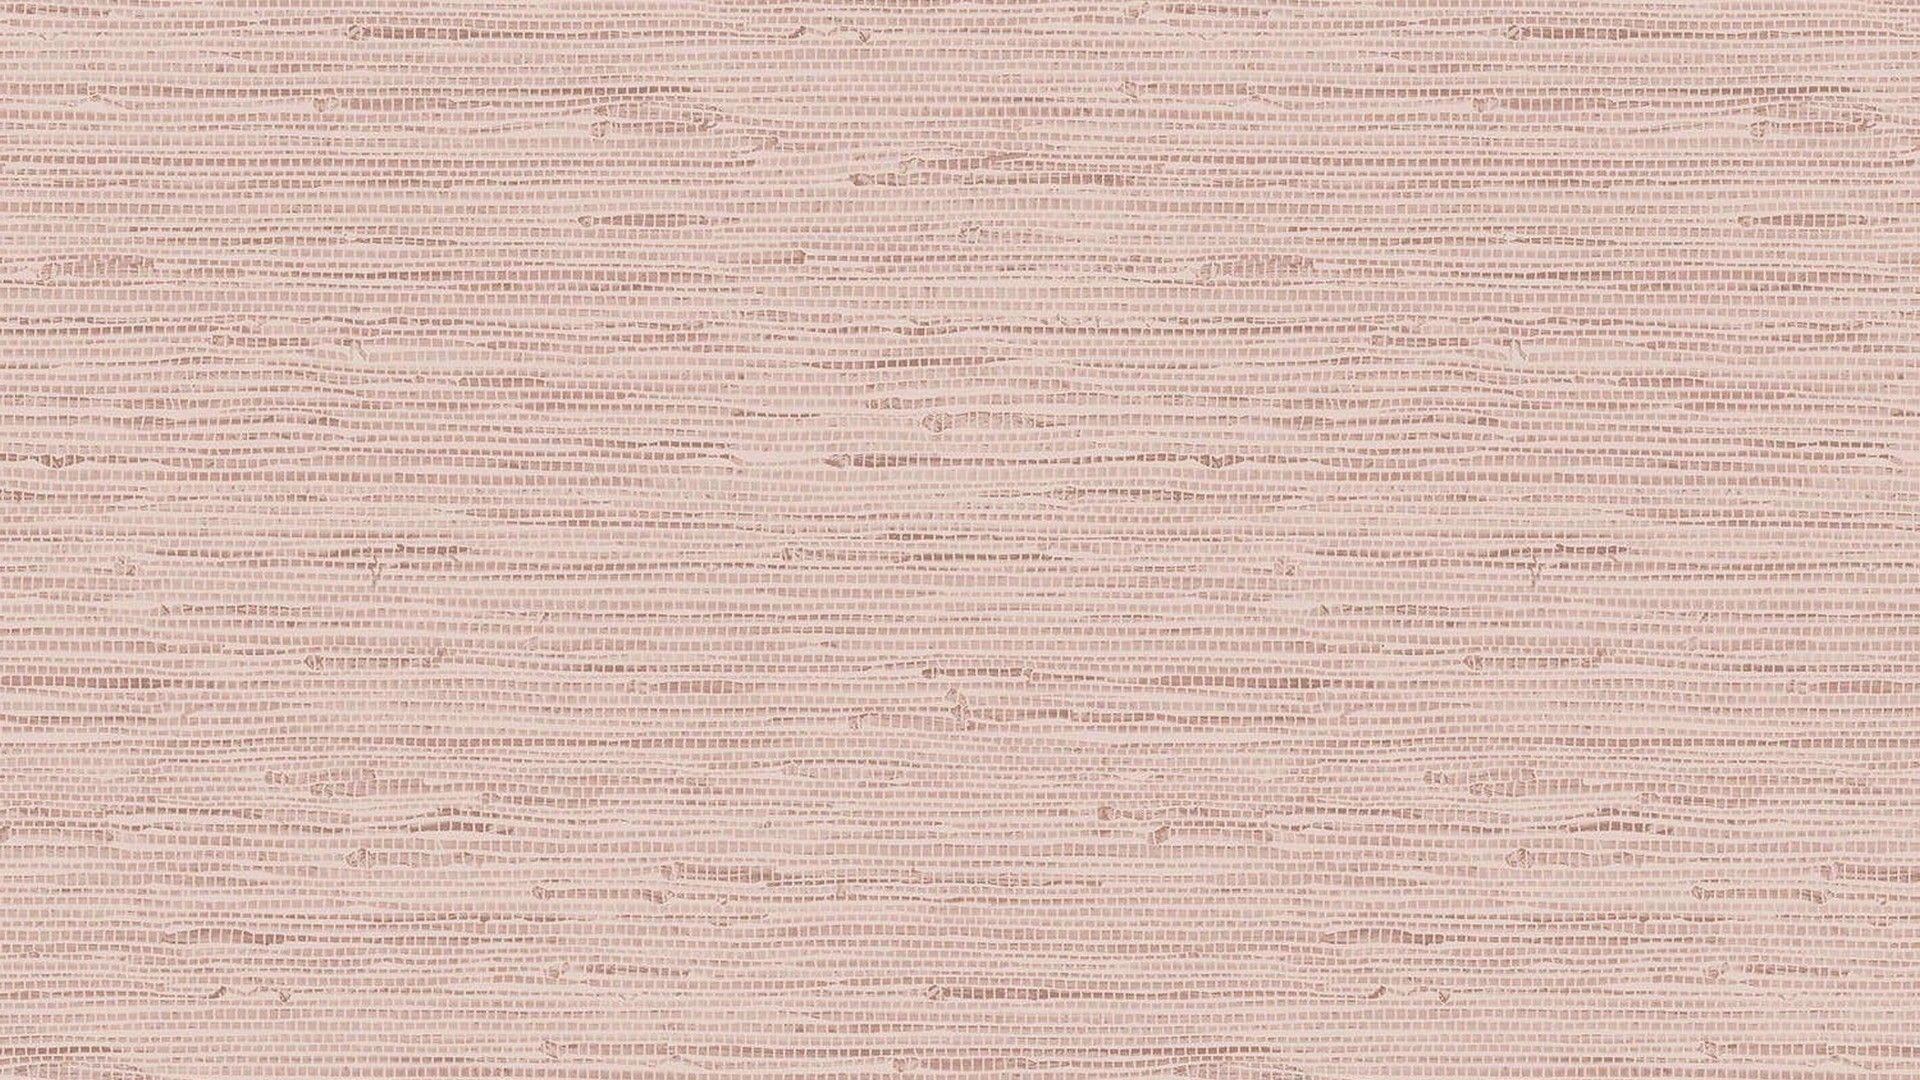 Rose Gold Mac Wallpaper